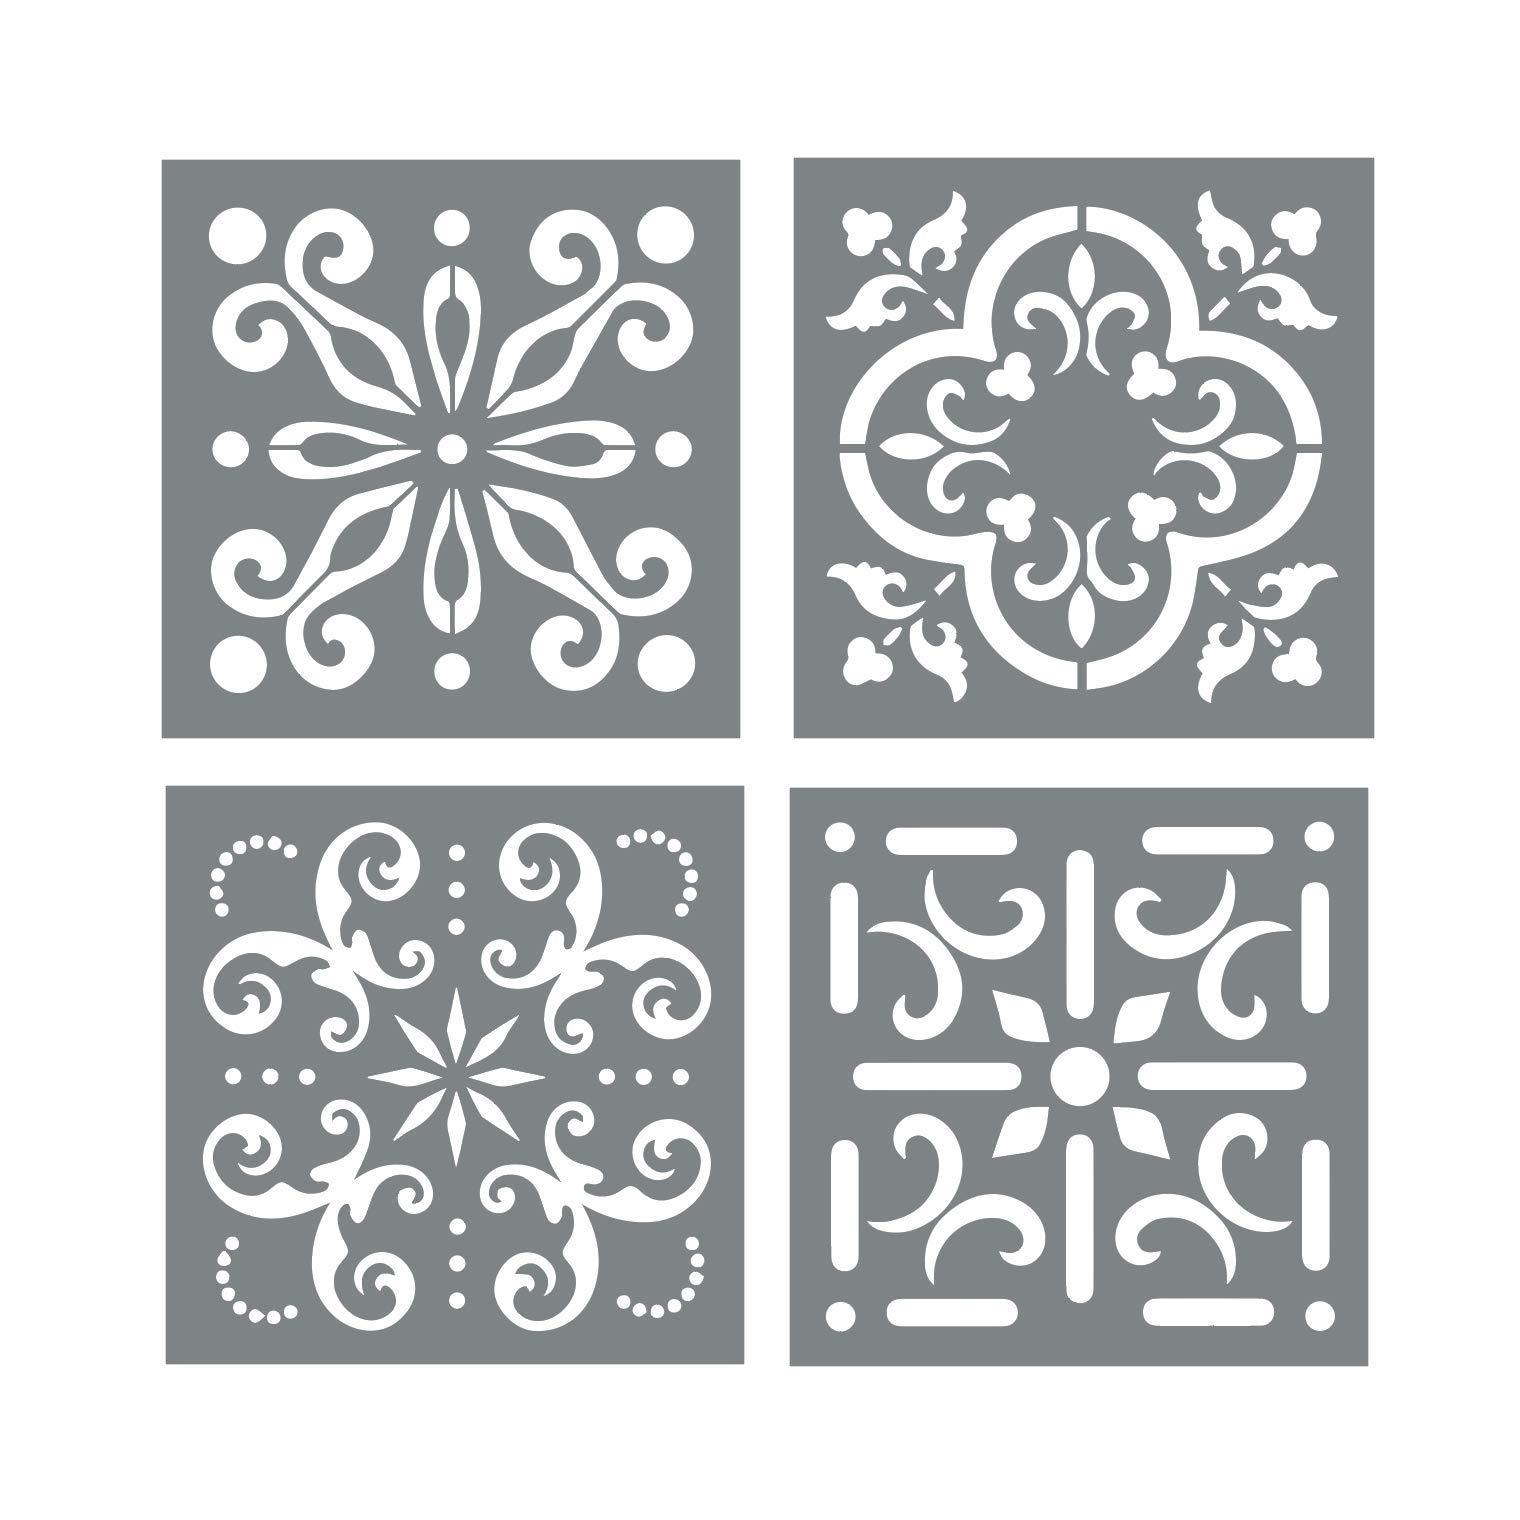 Mexican Tile Stencil Set - Pack of Four 4x4 Tile Stencil Designs for Painting - Wall or Floor Tile Stencil Designs - for Making Mosaic Tile Stencil Patterns by I like that lamp